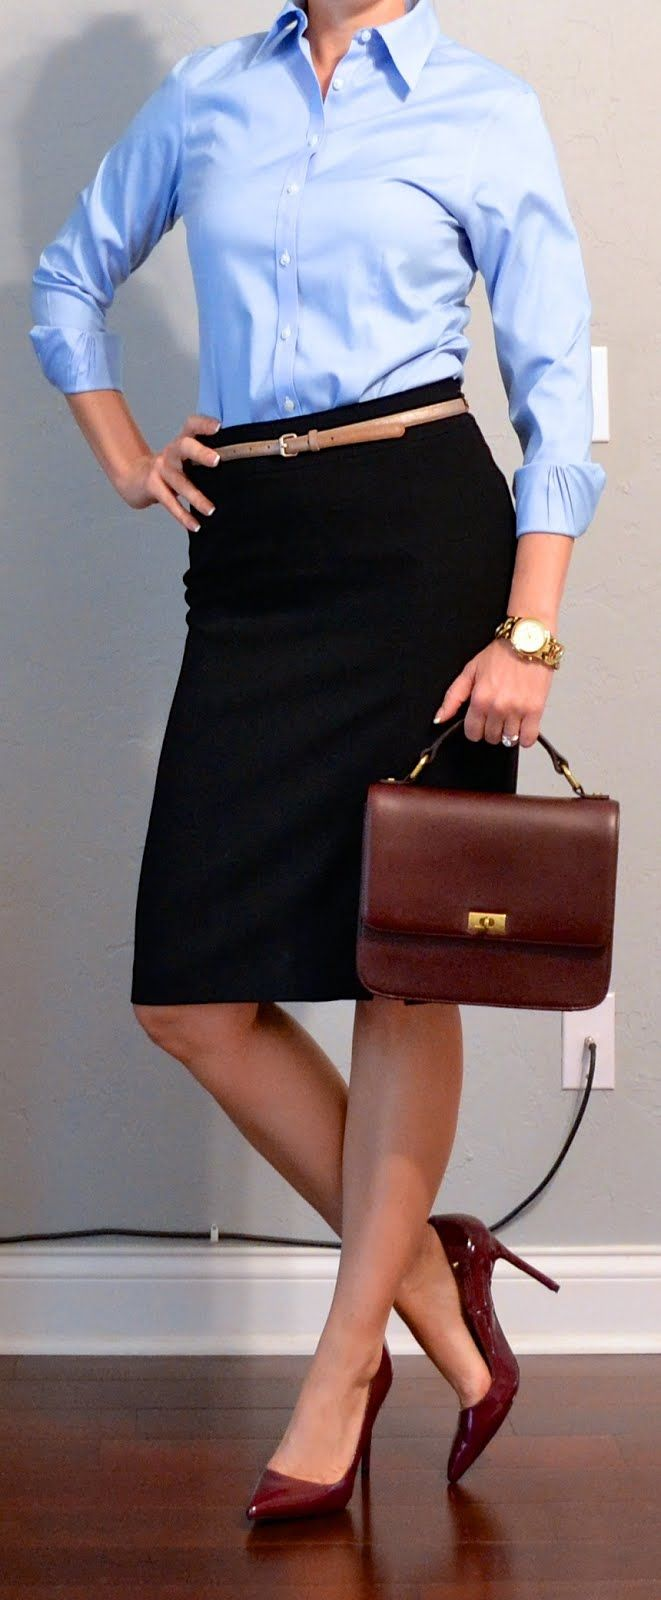 outfit post: blue button down shirt, black pencil skirt, burgundy pumps | Outfit Posts Dynamic